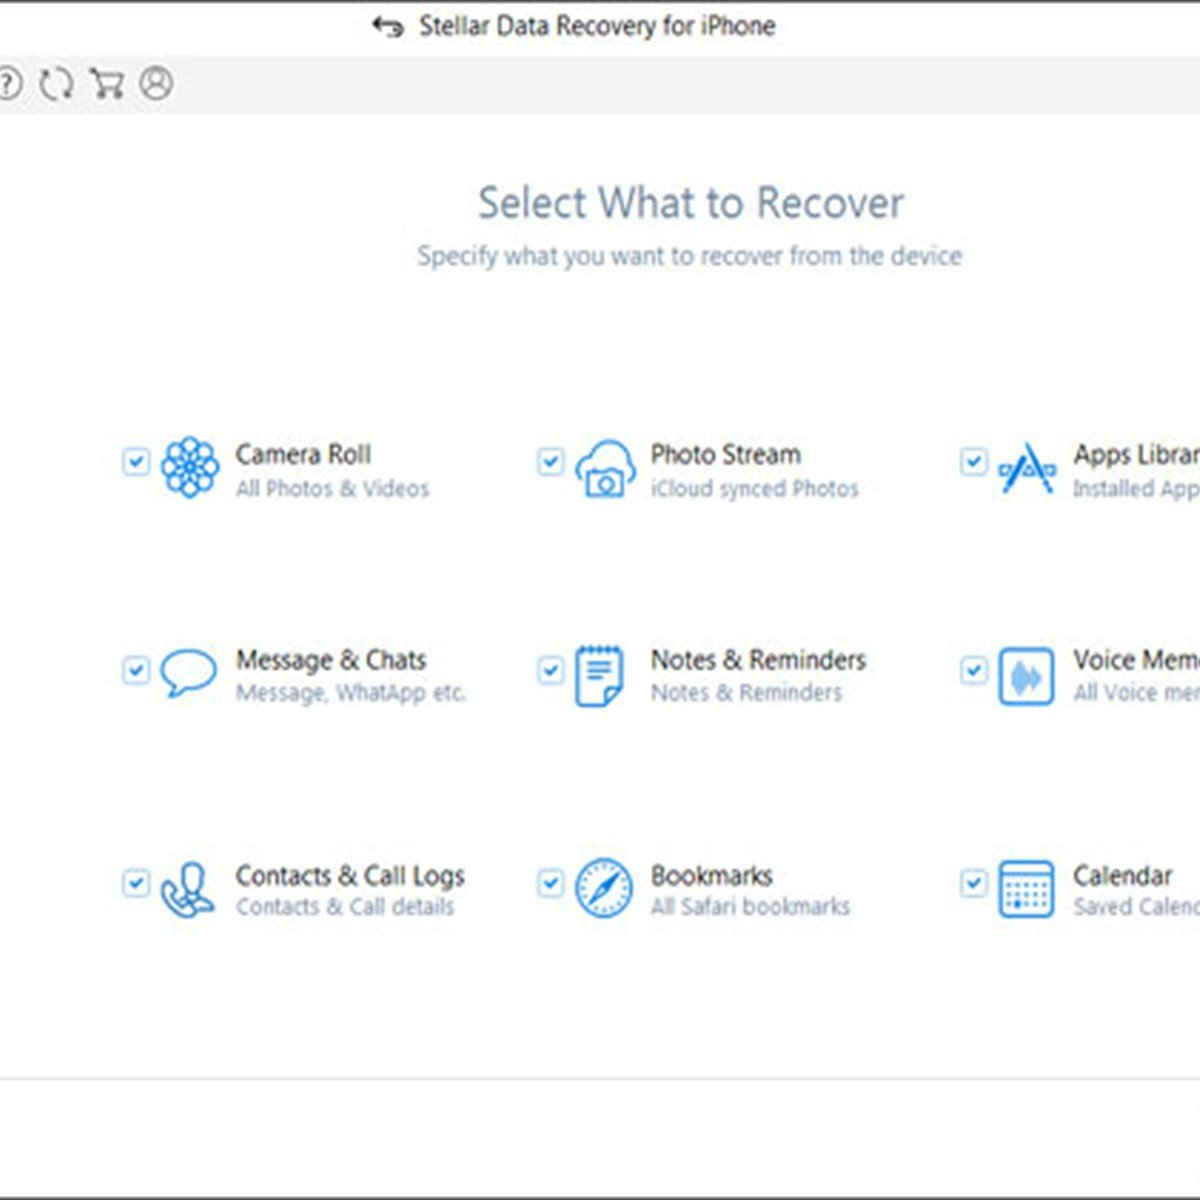 Stellar Data Recovery for iPhone Alternatives and Similar Software